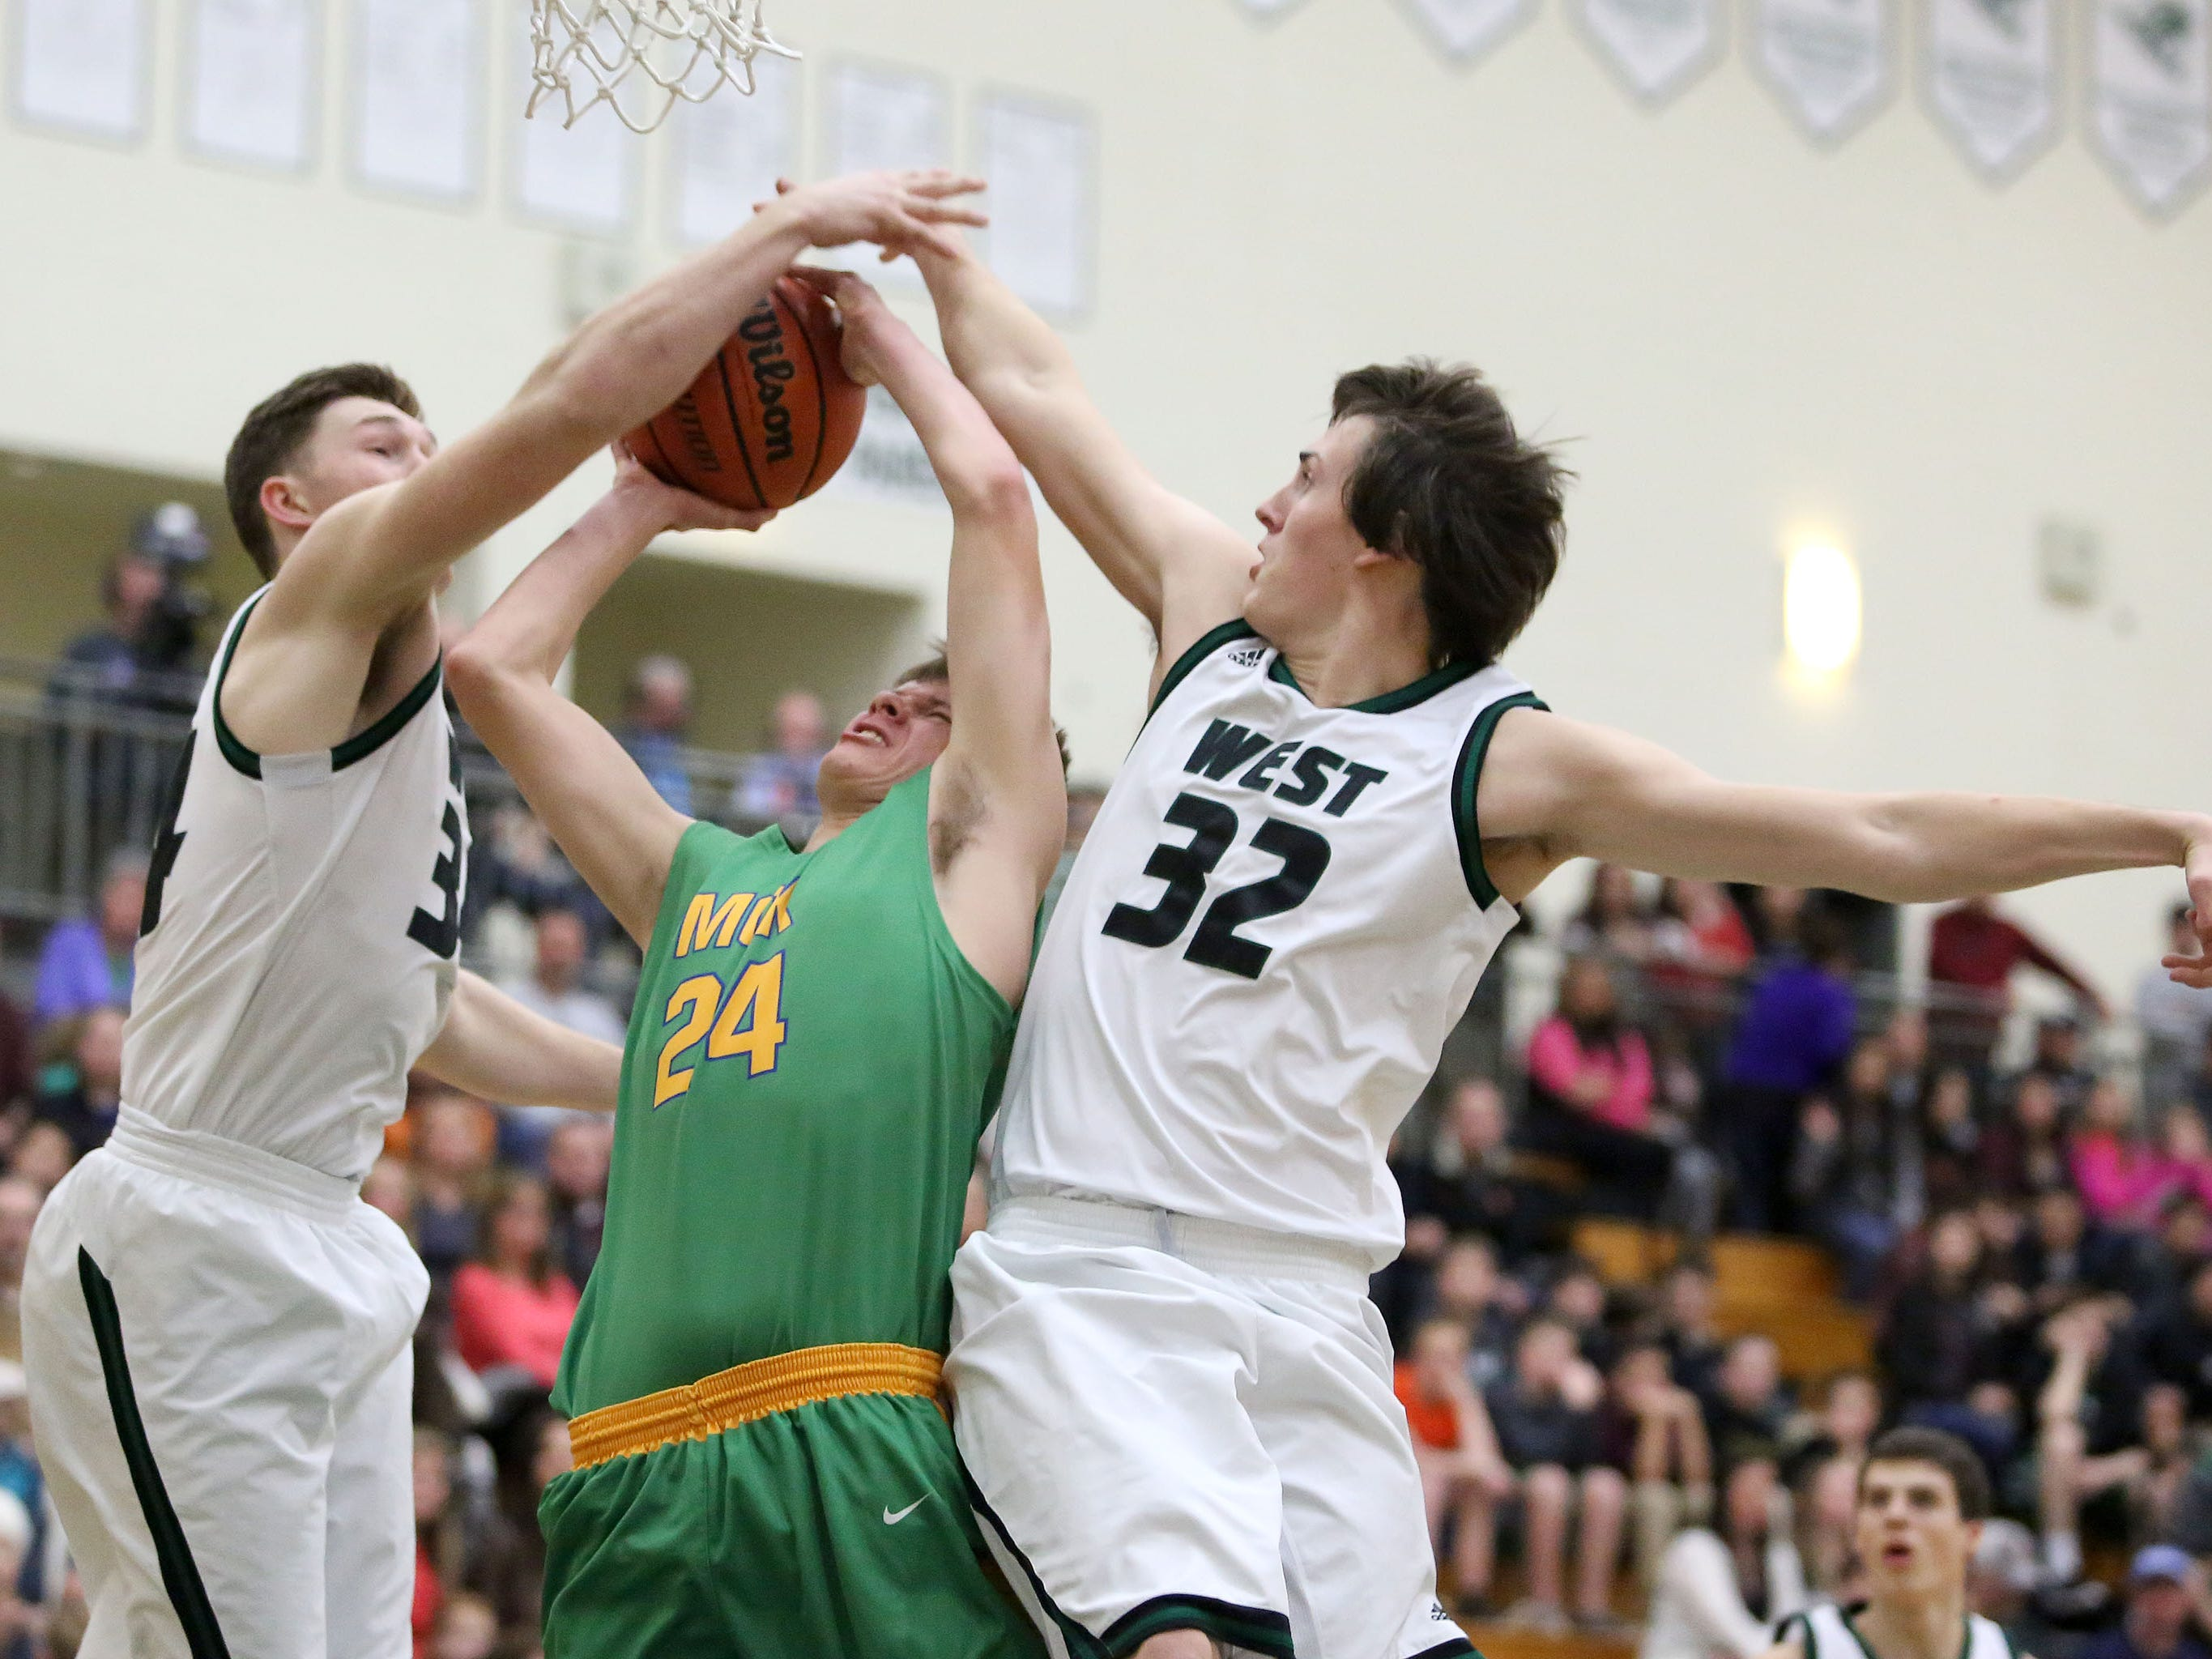 McKay's Tristen Wilson (24) has his shot blocked by West Salem's Jacob Kizer and Nate Hall (32) during their Greater Valley Conference game on Friday.